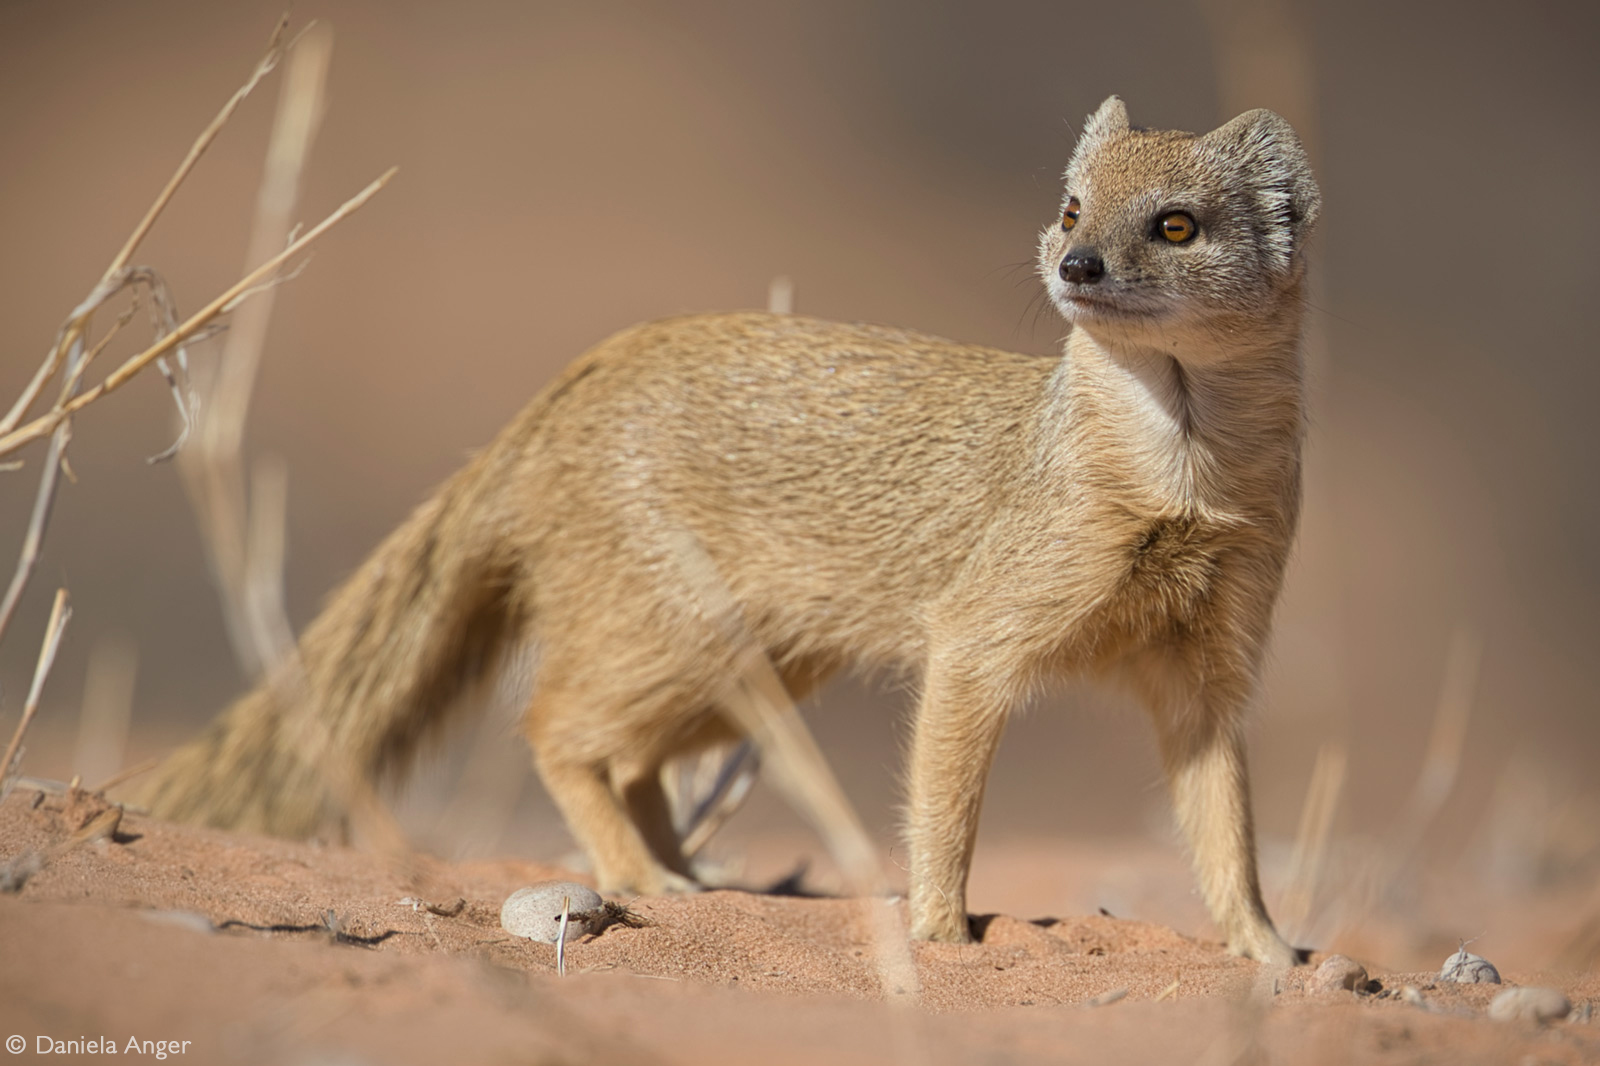 A yellow mongoose passes through camp. Kgalagadi Transfrontier National Park, South Africa © Daniela Anger